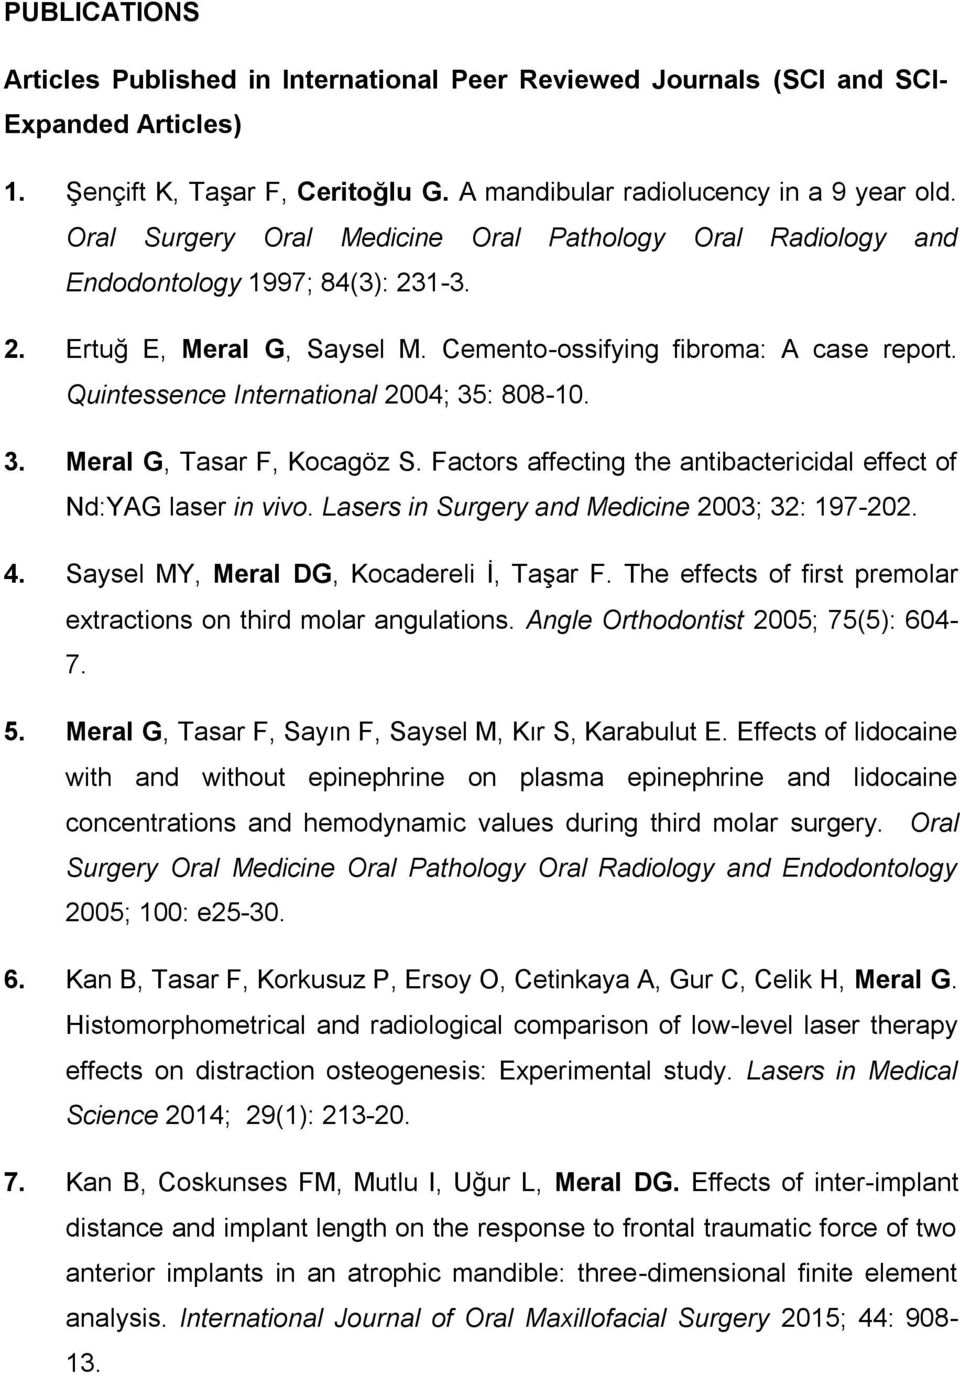 Quintessence International 2004; 35: 808-10. 3. Meral G, Tasar F, Kocagöz S. Factors affecting the antibactericidal effect of Nd:YAG laser in vivo. Lasers in Surgery and Medicine 2003; 32: 197-202. 4.